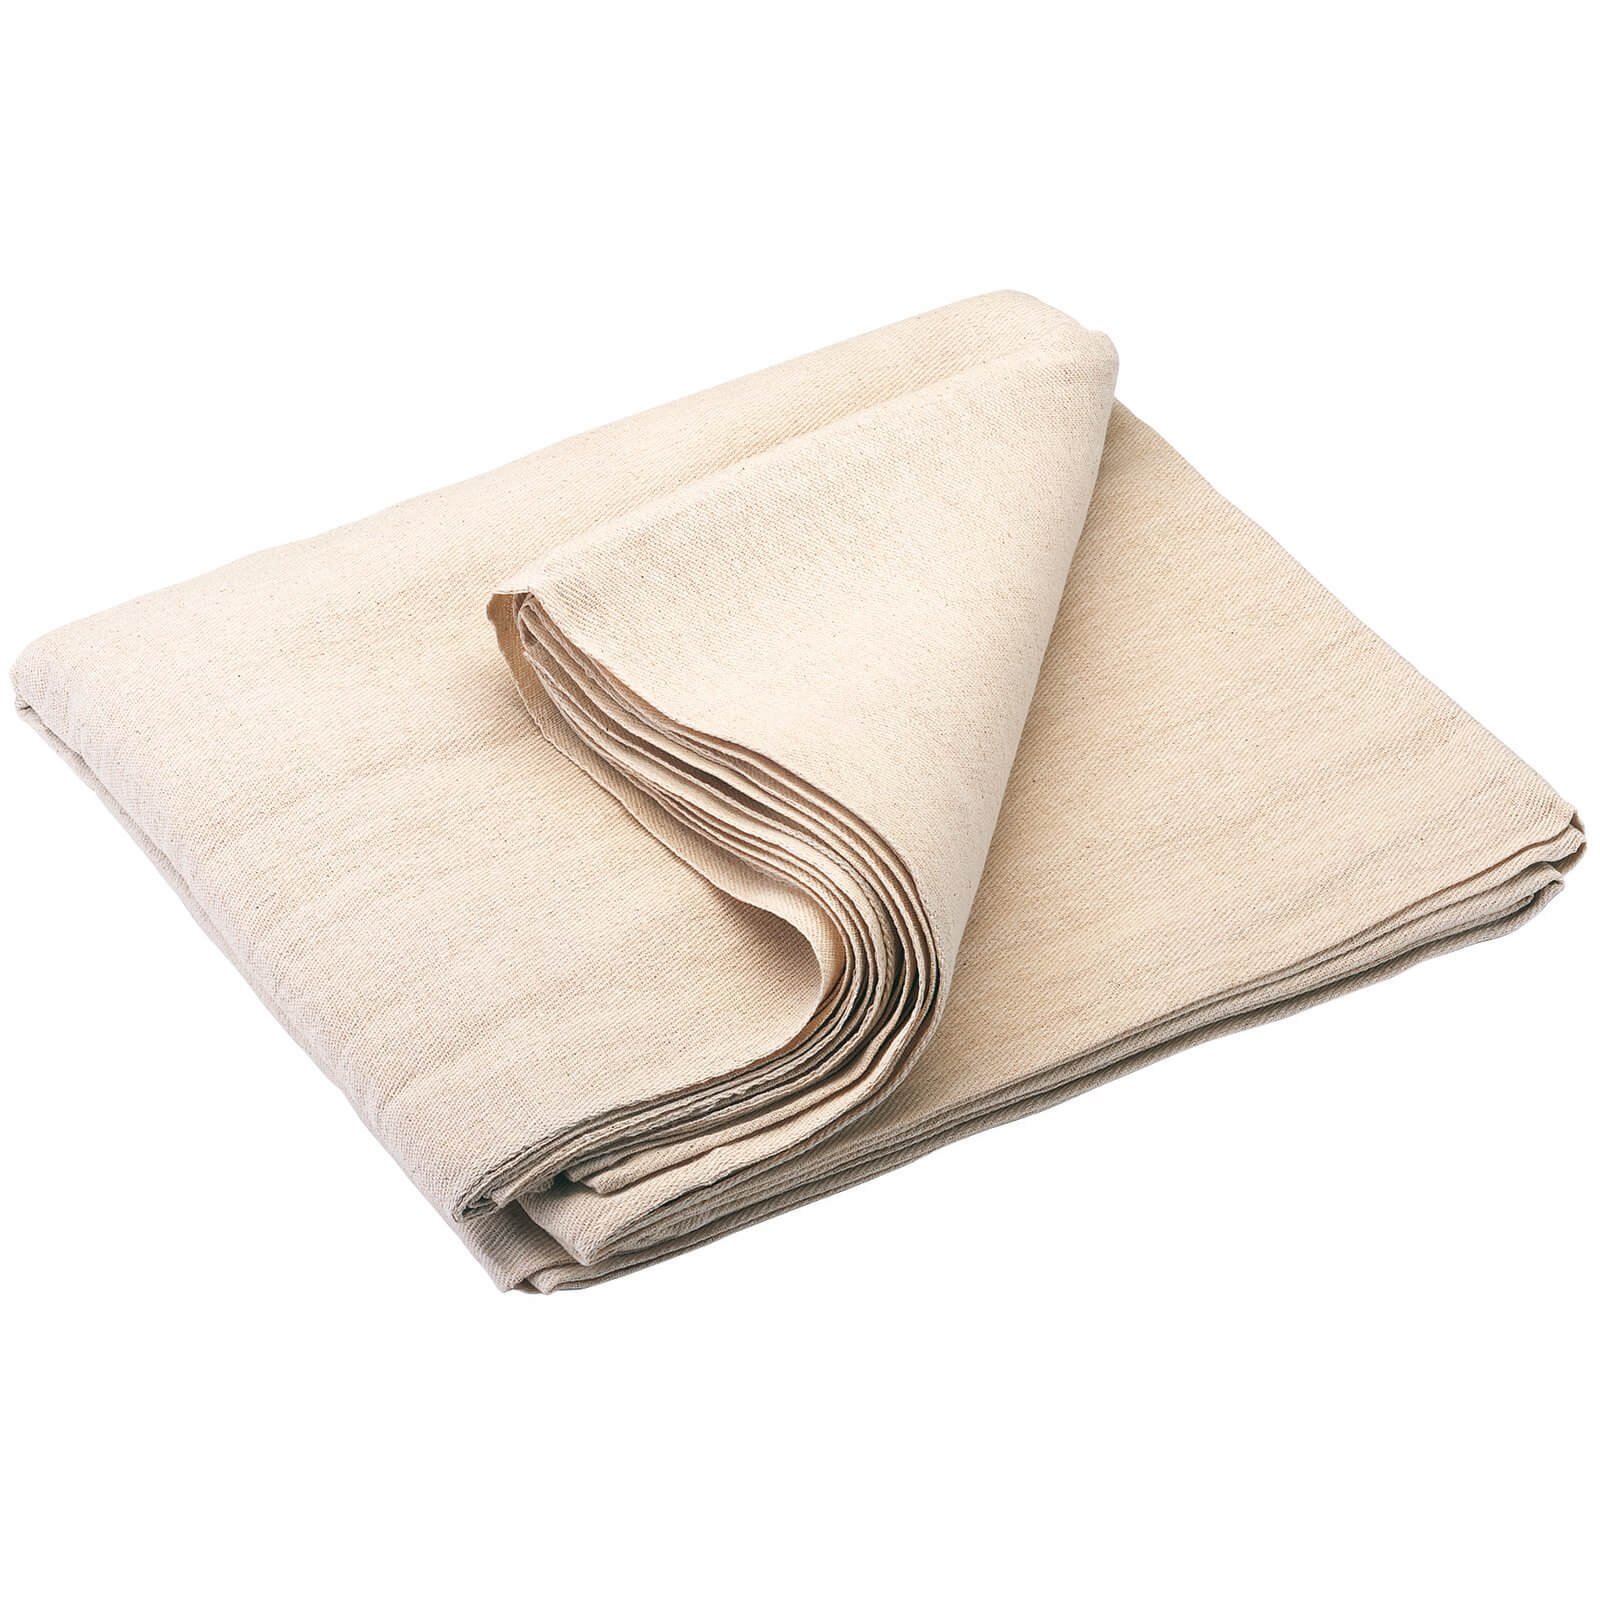 Image of Draper Cotton Dust Sheet 3.6m 3.6m Pack of 1